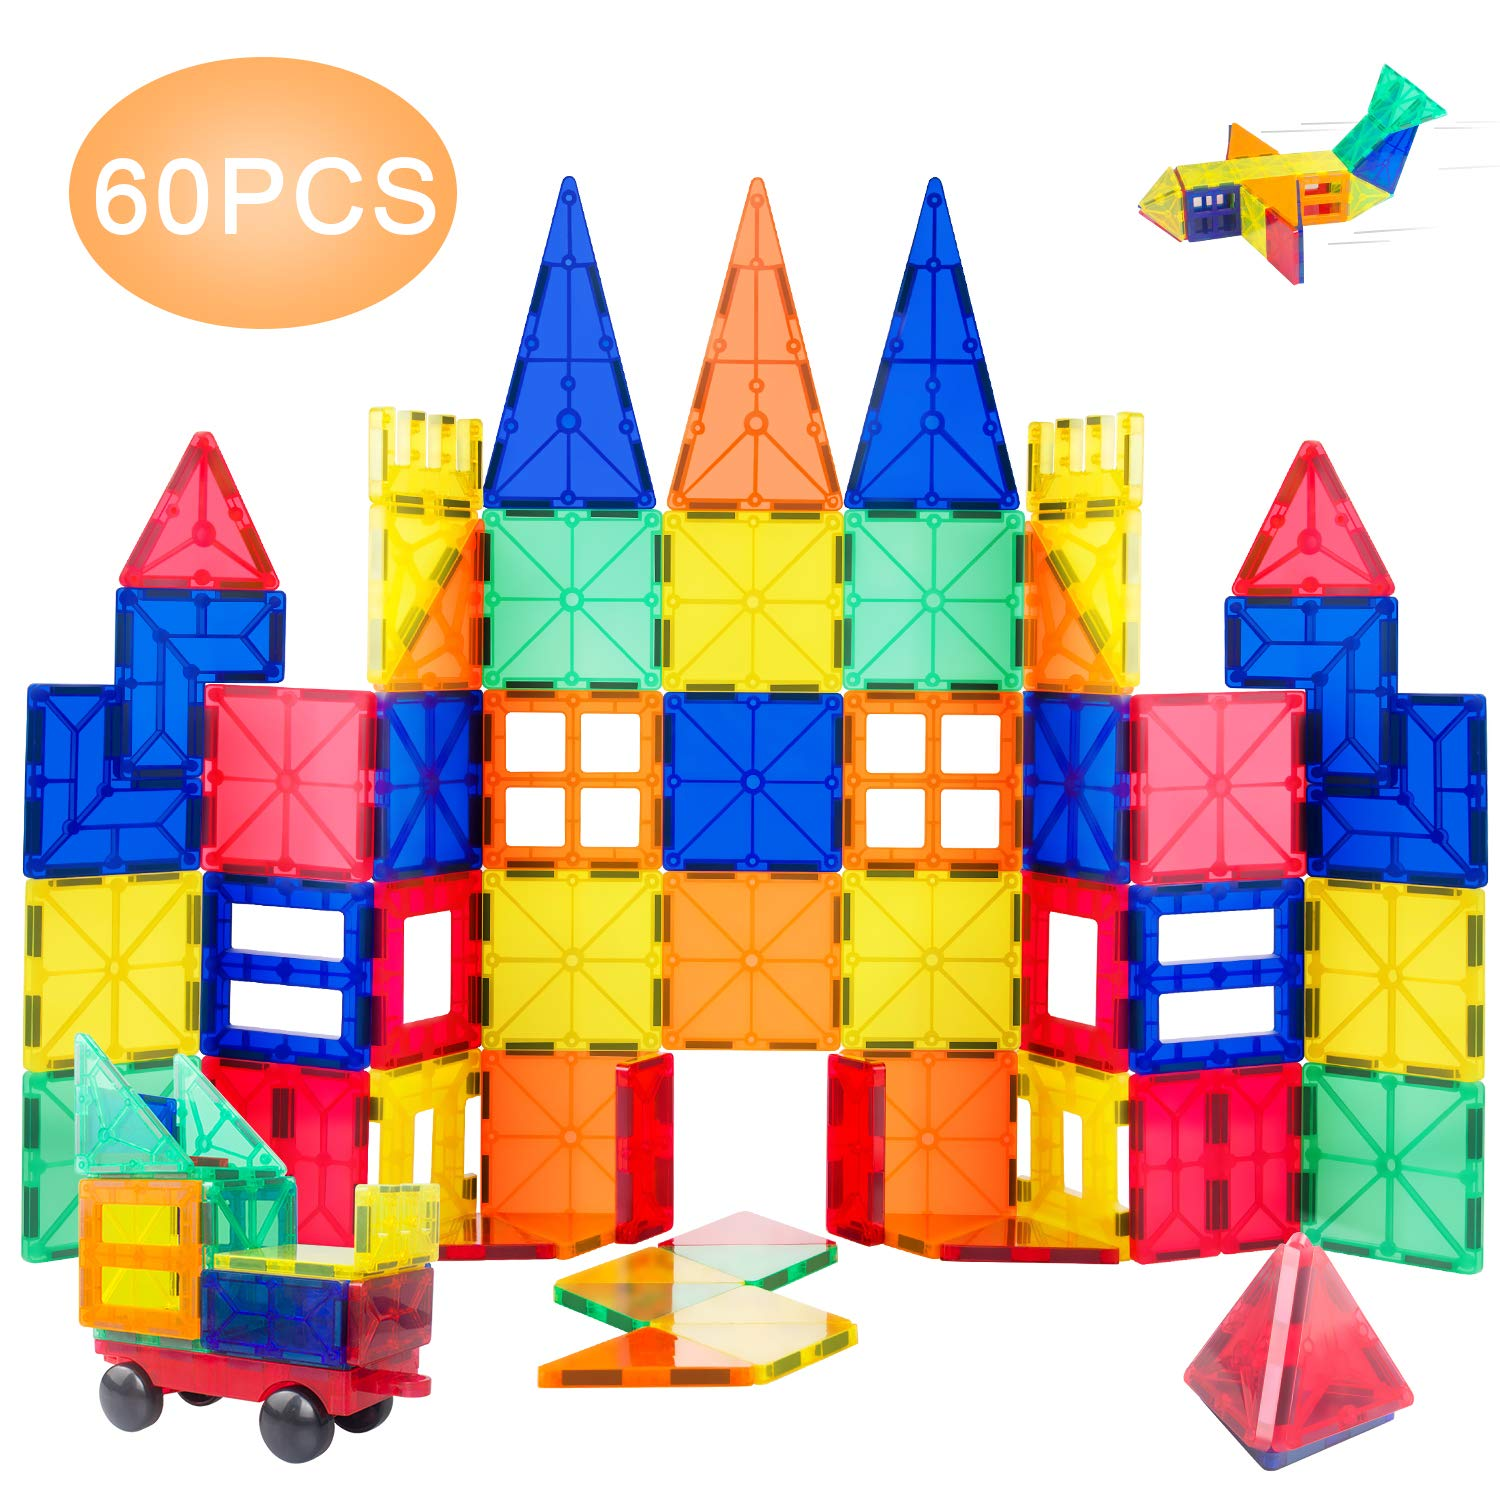 VCANNY Magnetic Blocks, Magnetic Building Blocks Set for Boys/Girls, Magnetic Tiles Educational STEM Toys for Kids/Toddlers, 60 Piece